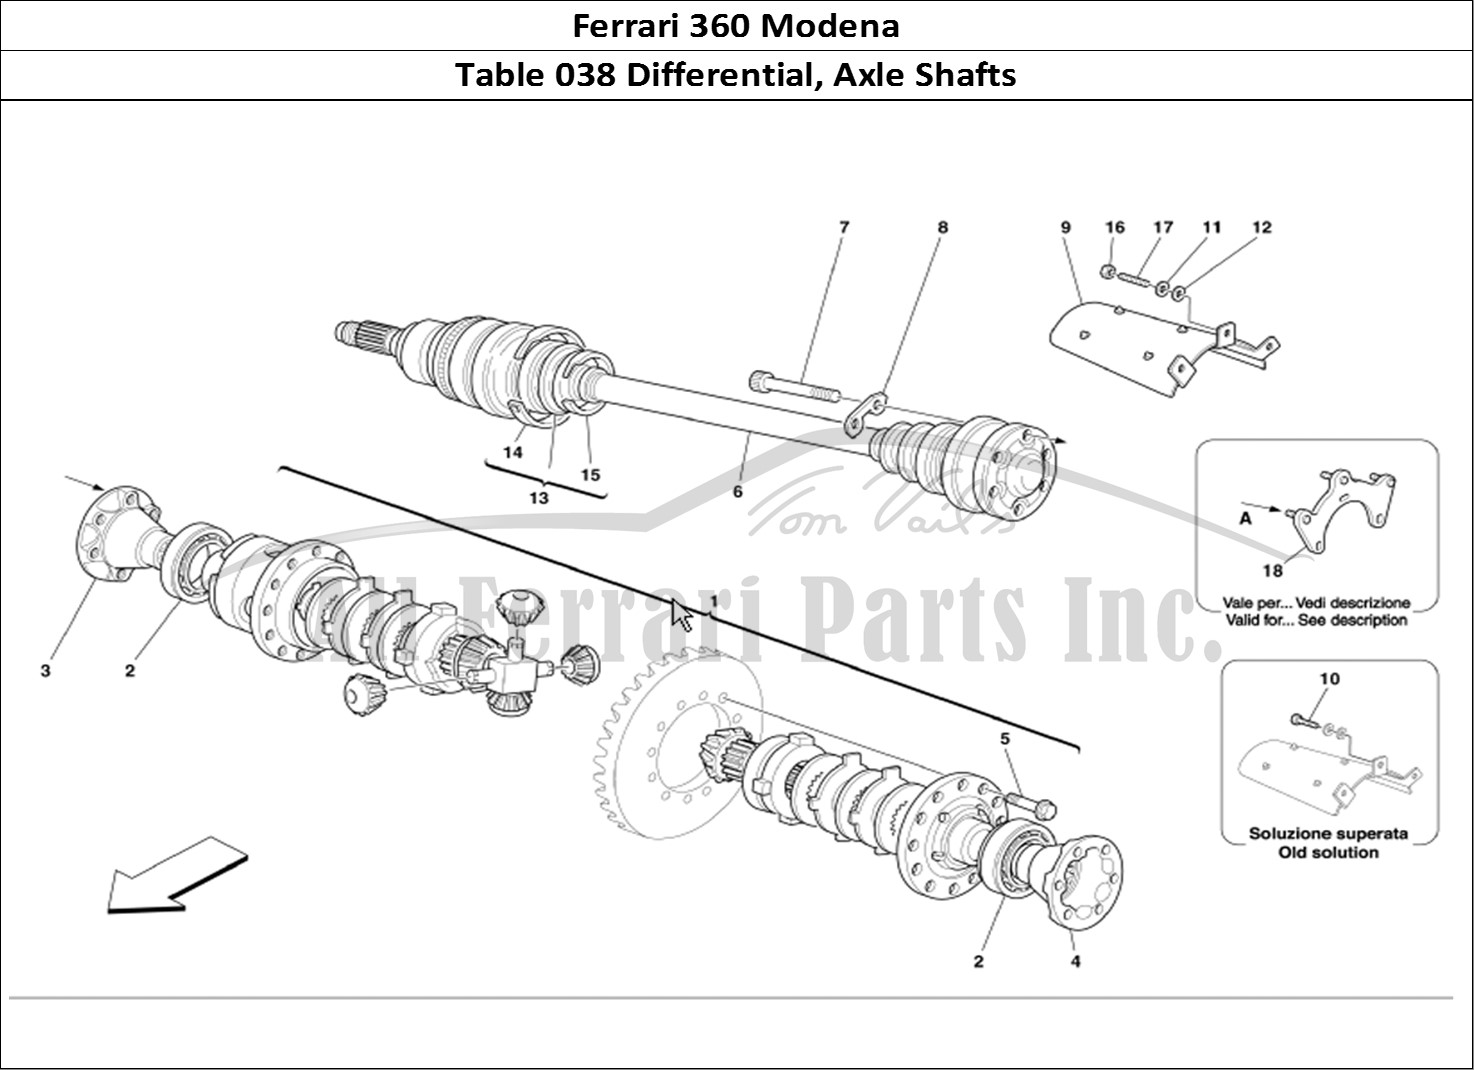 Buy original Ferrari 360 Modena 038 Differential, Axle